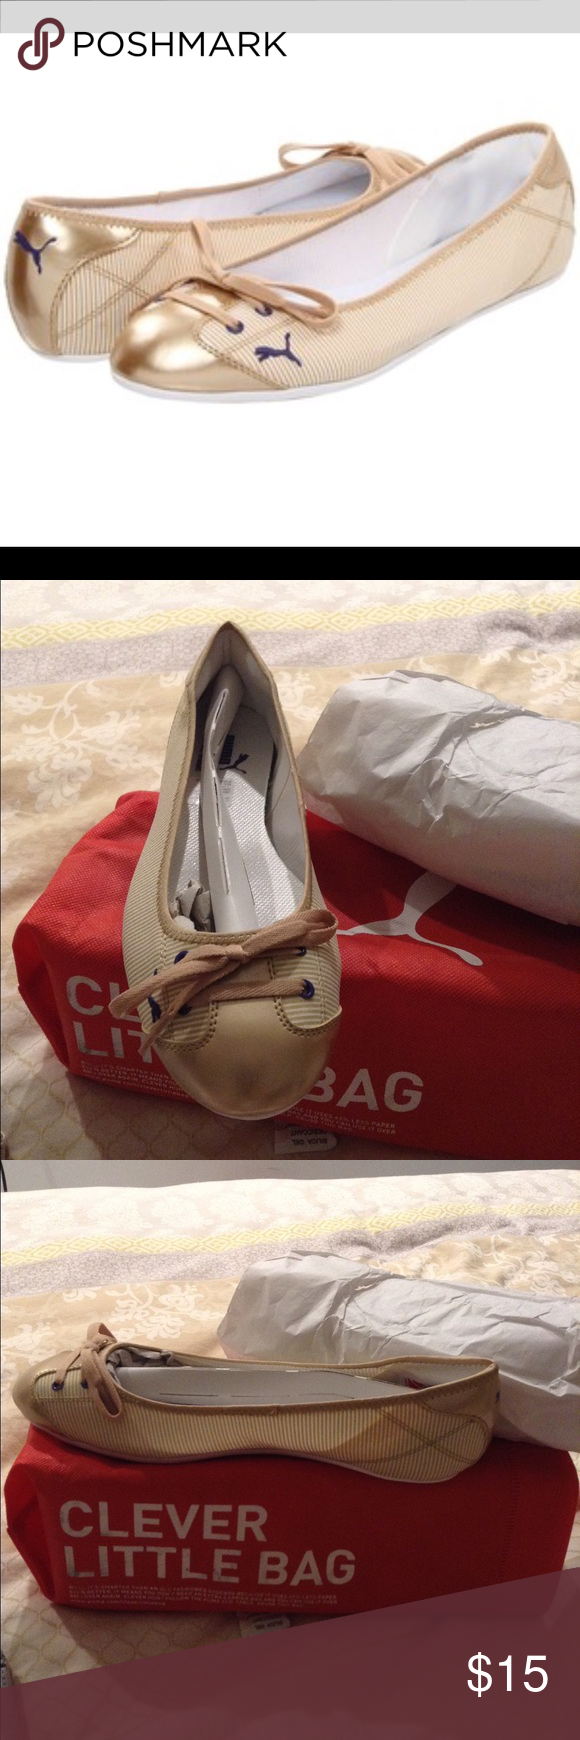 Puma ballet flats size 7.5. Never worn Never worn. Puma ballet flats. Still in bag. Size 7.5. Gold and white color. Fits true to size Puma Shoes Flats & Loafers